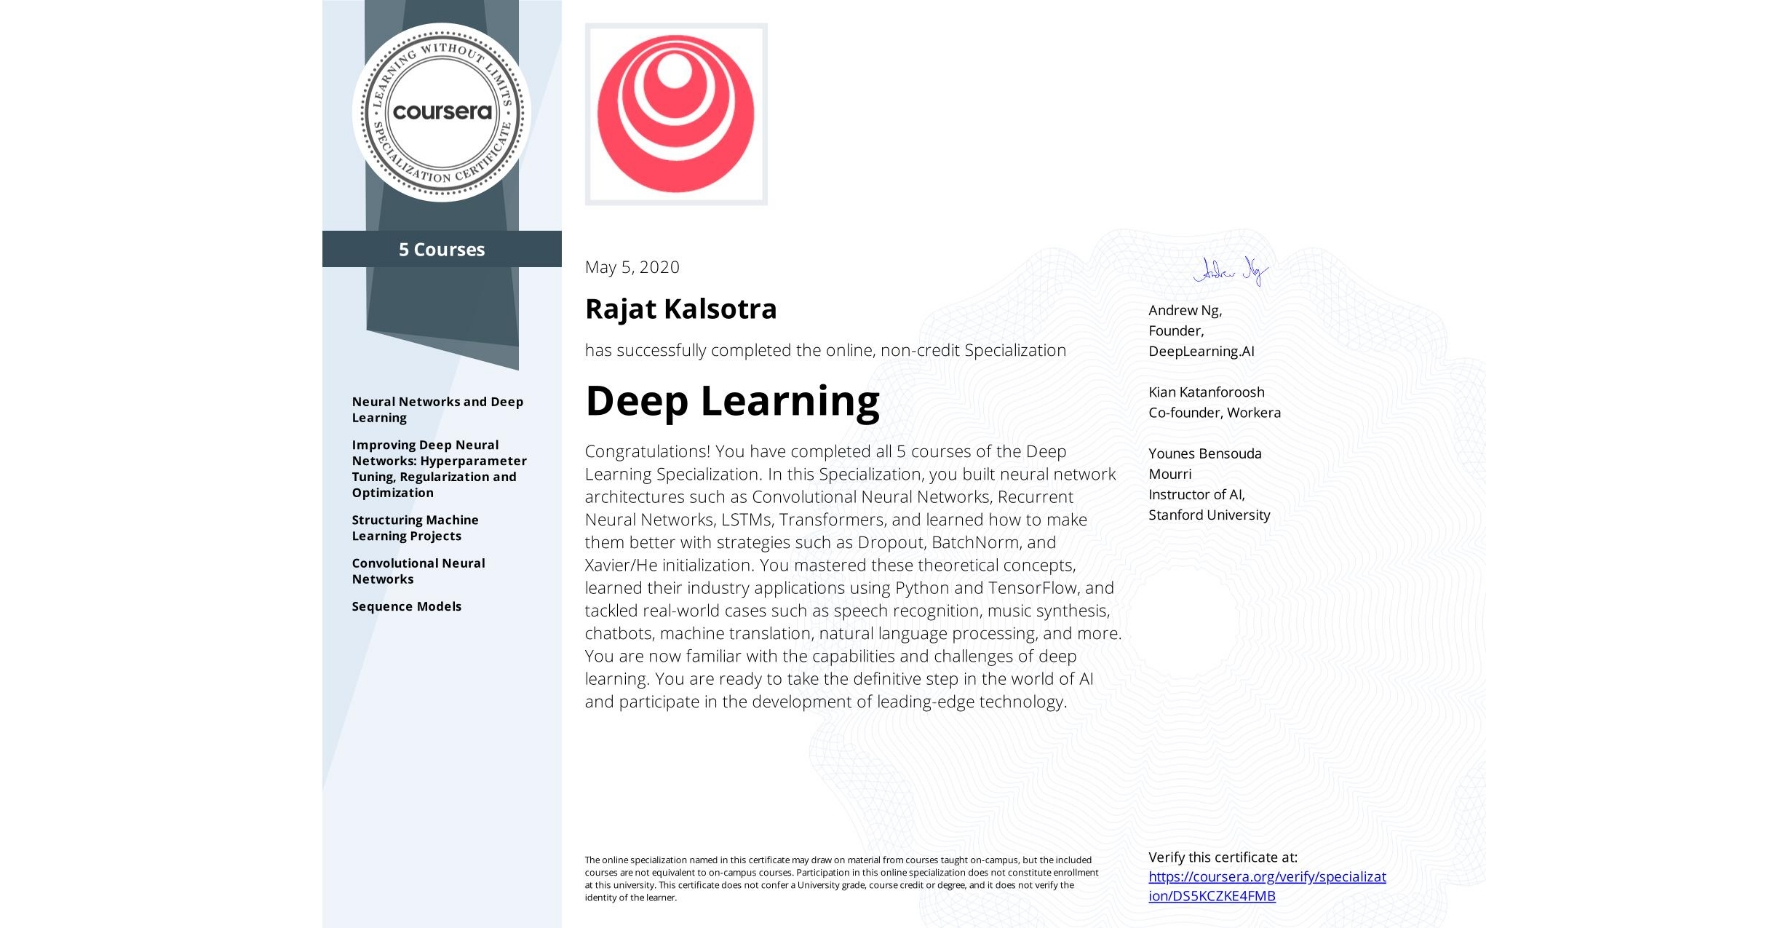 View certificate for Rajat Kalsotra, Deep Learning, offered through Coursera. The Deep Learning Specialization is designed to prepare learners to participate in the development of cutting-edge AI technology, and to understand the capability, the challenges, and the consequences of the rise of deep learning. Through five interconnected courses, learners develop a profound knowledge of the hottest AI algorithms, mastering deep learning from its foundations (neural networks) to its industry applications (Computer Vision, Natural Language Processing, Speech Recognition, etc.).